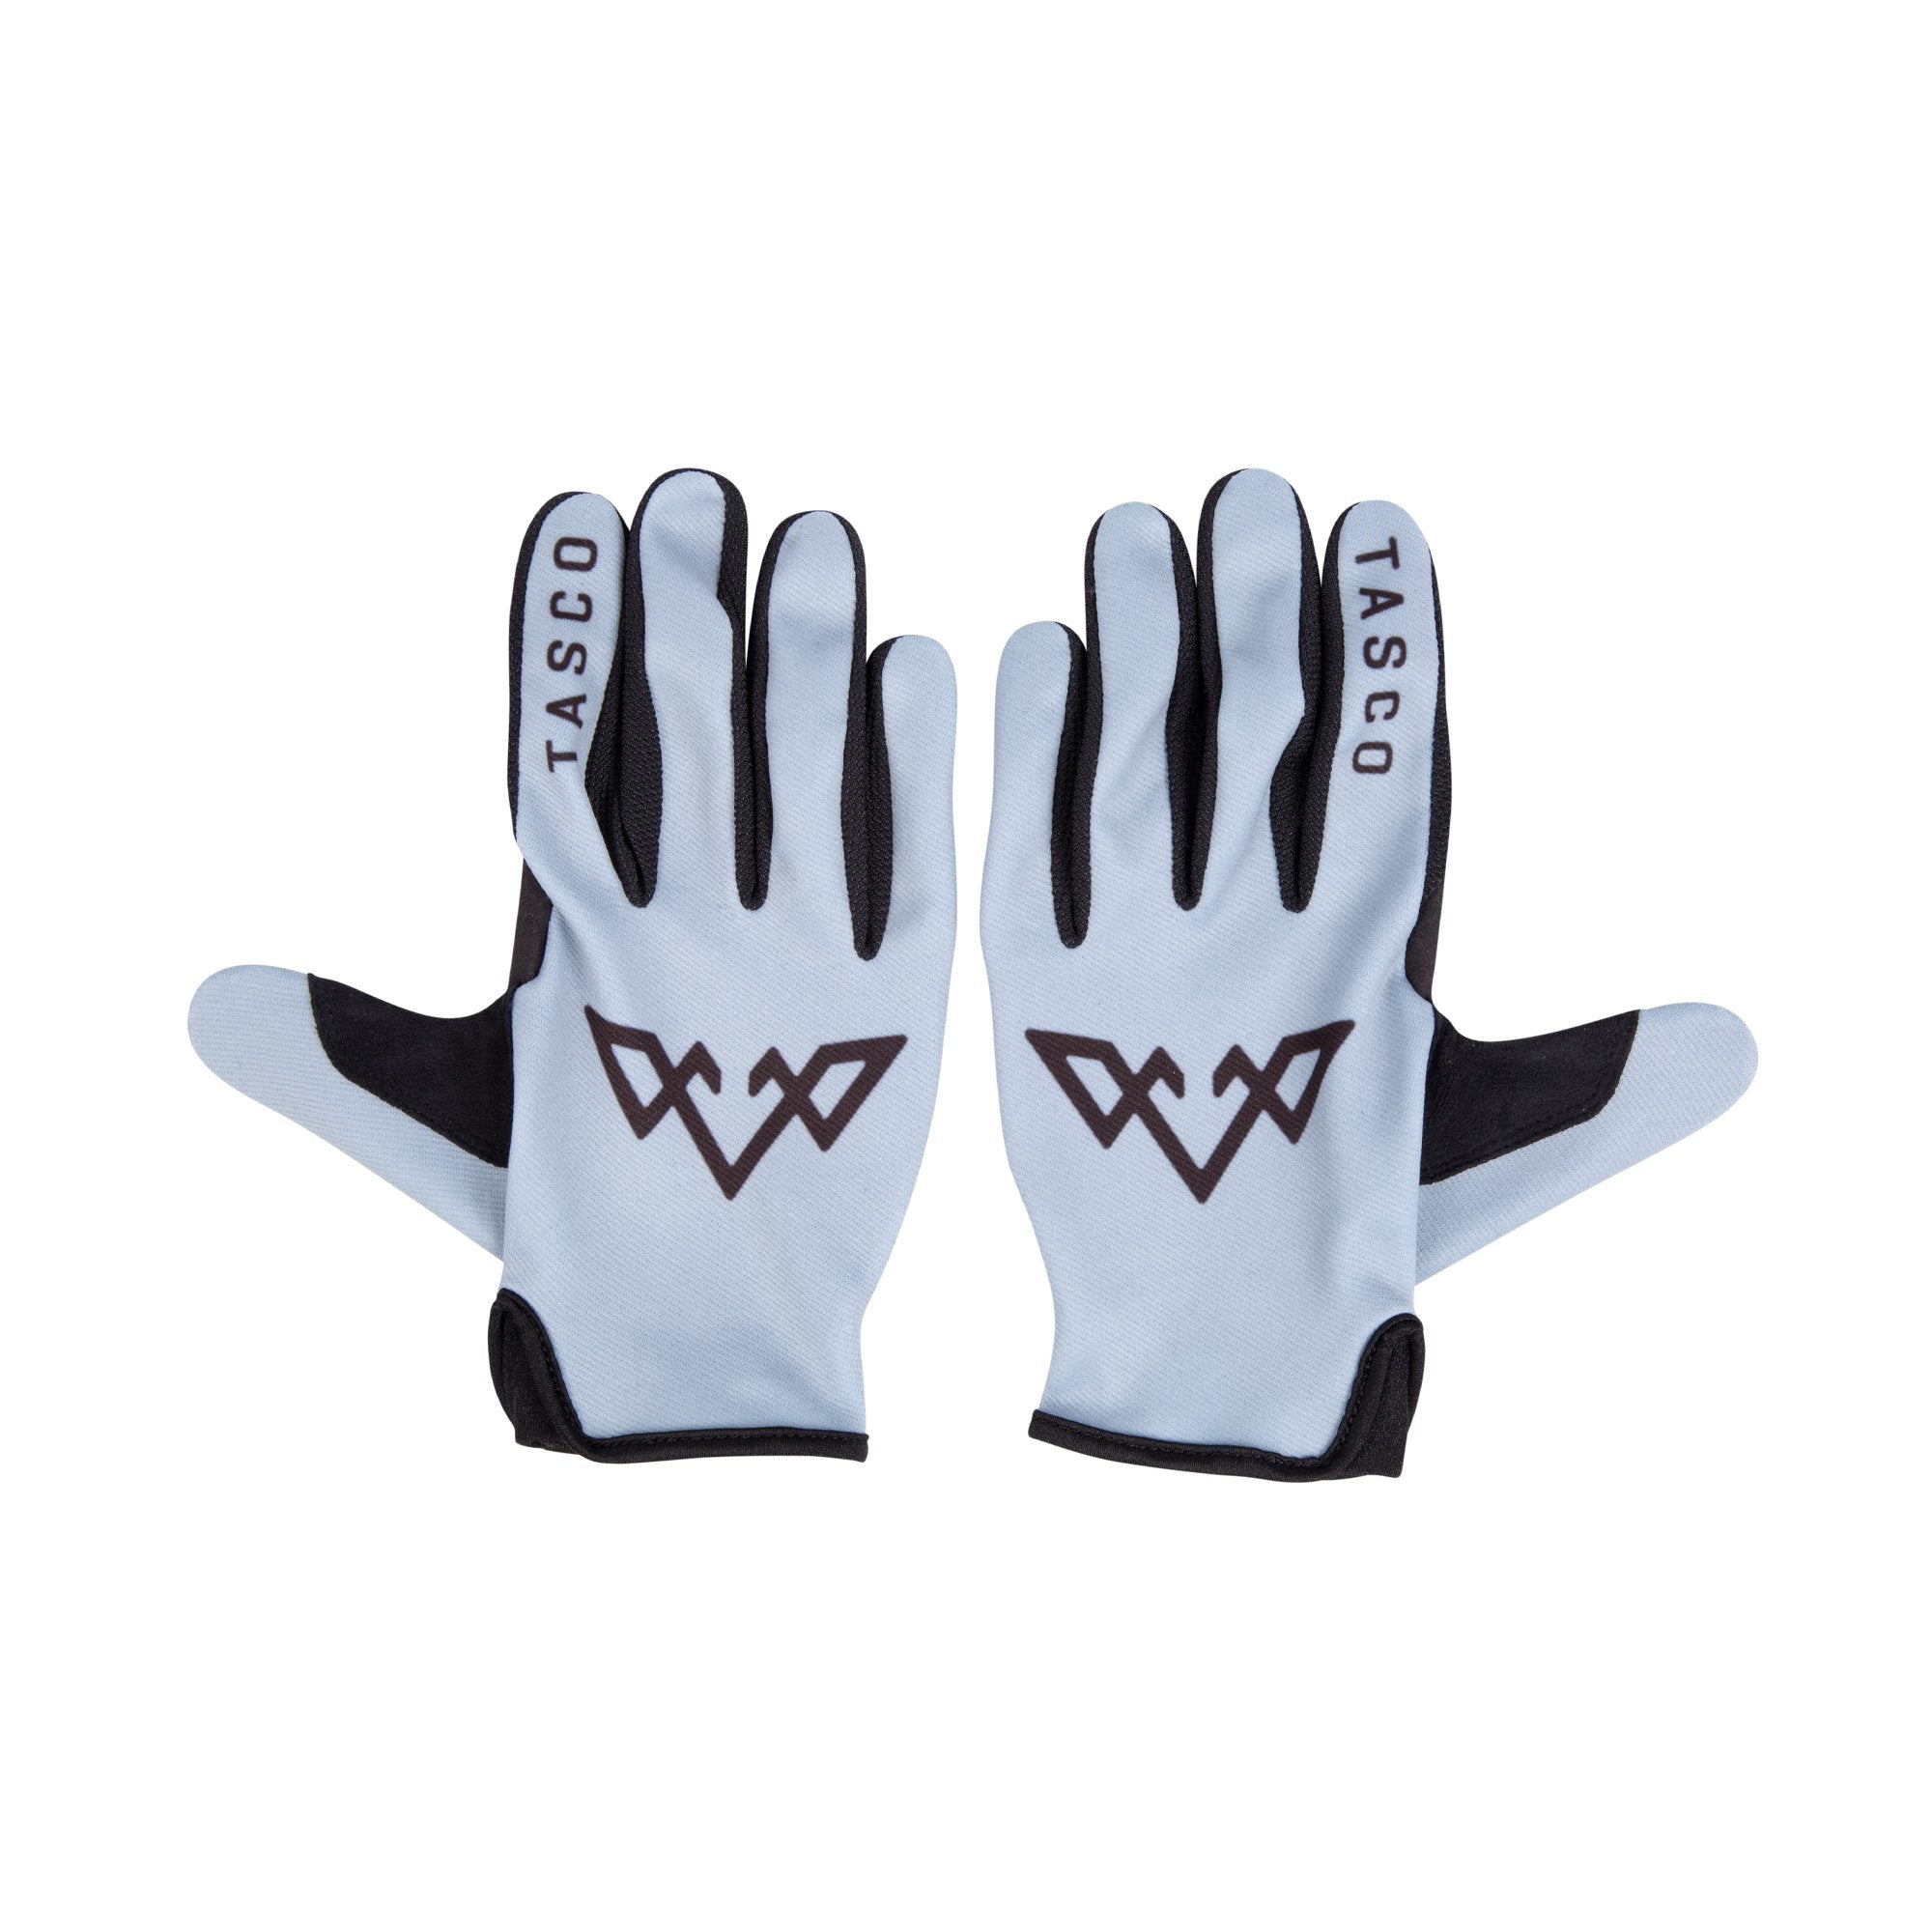 Tasco Ridgeline Youth Glove